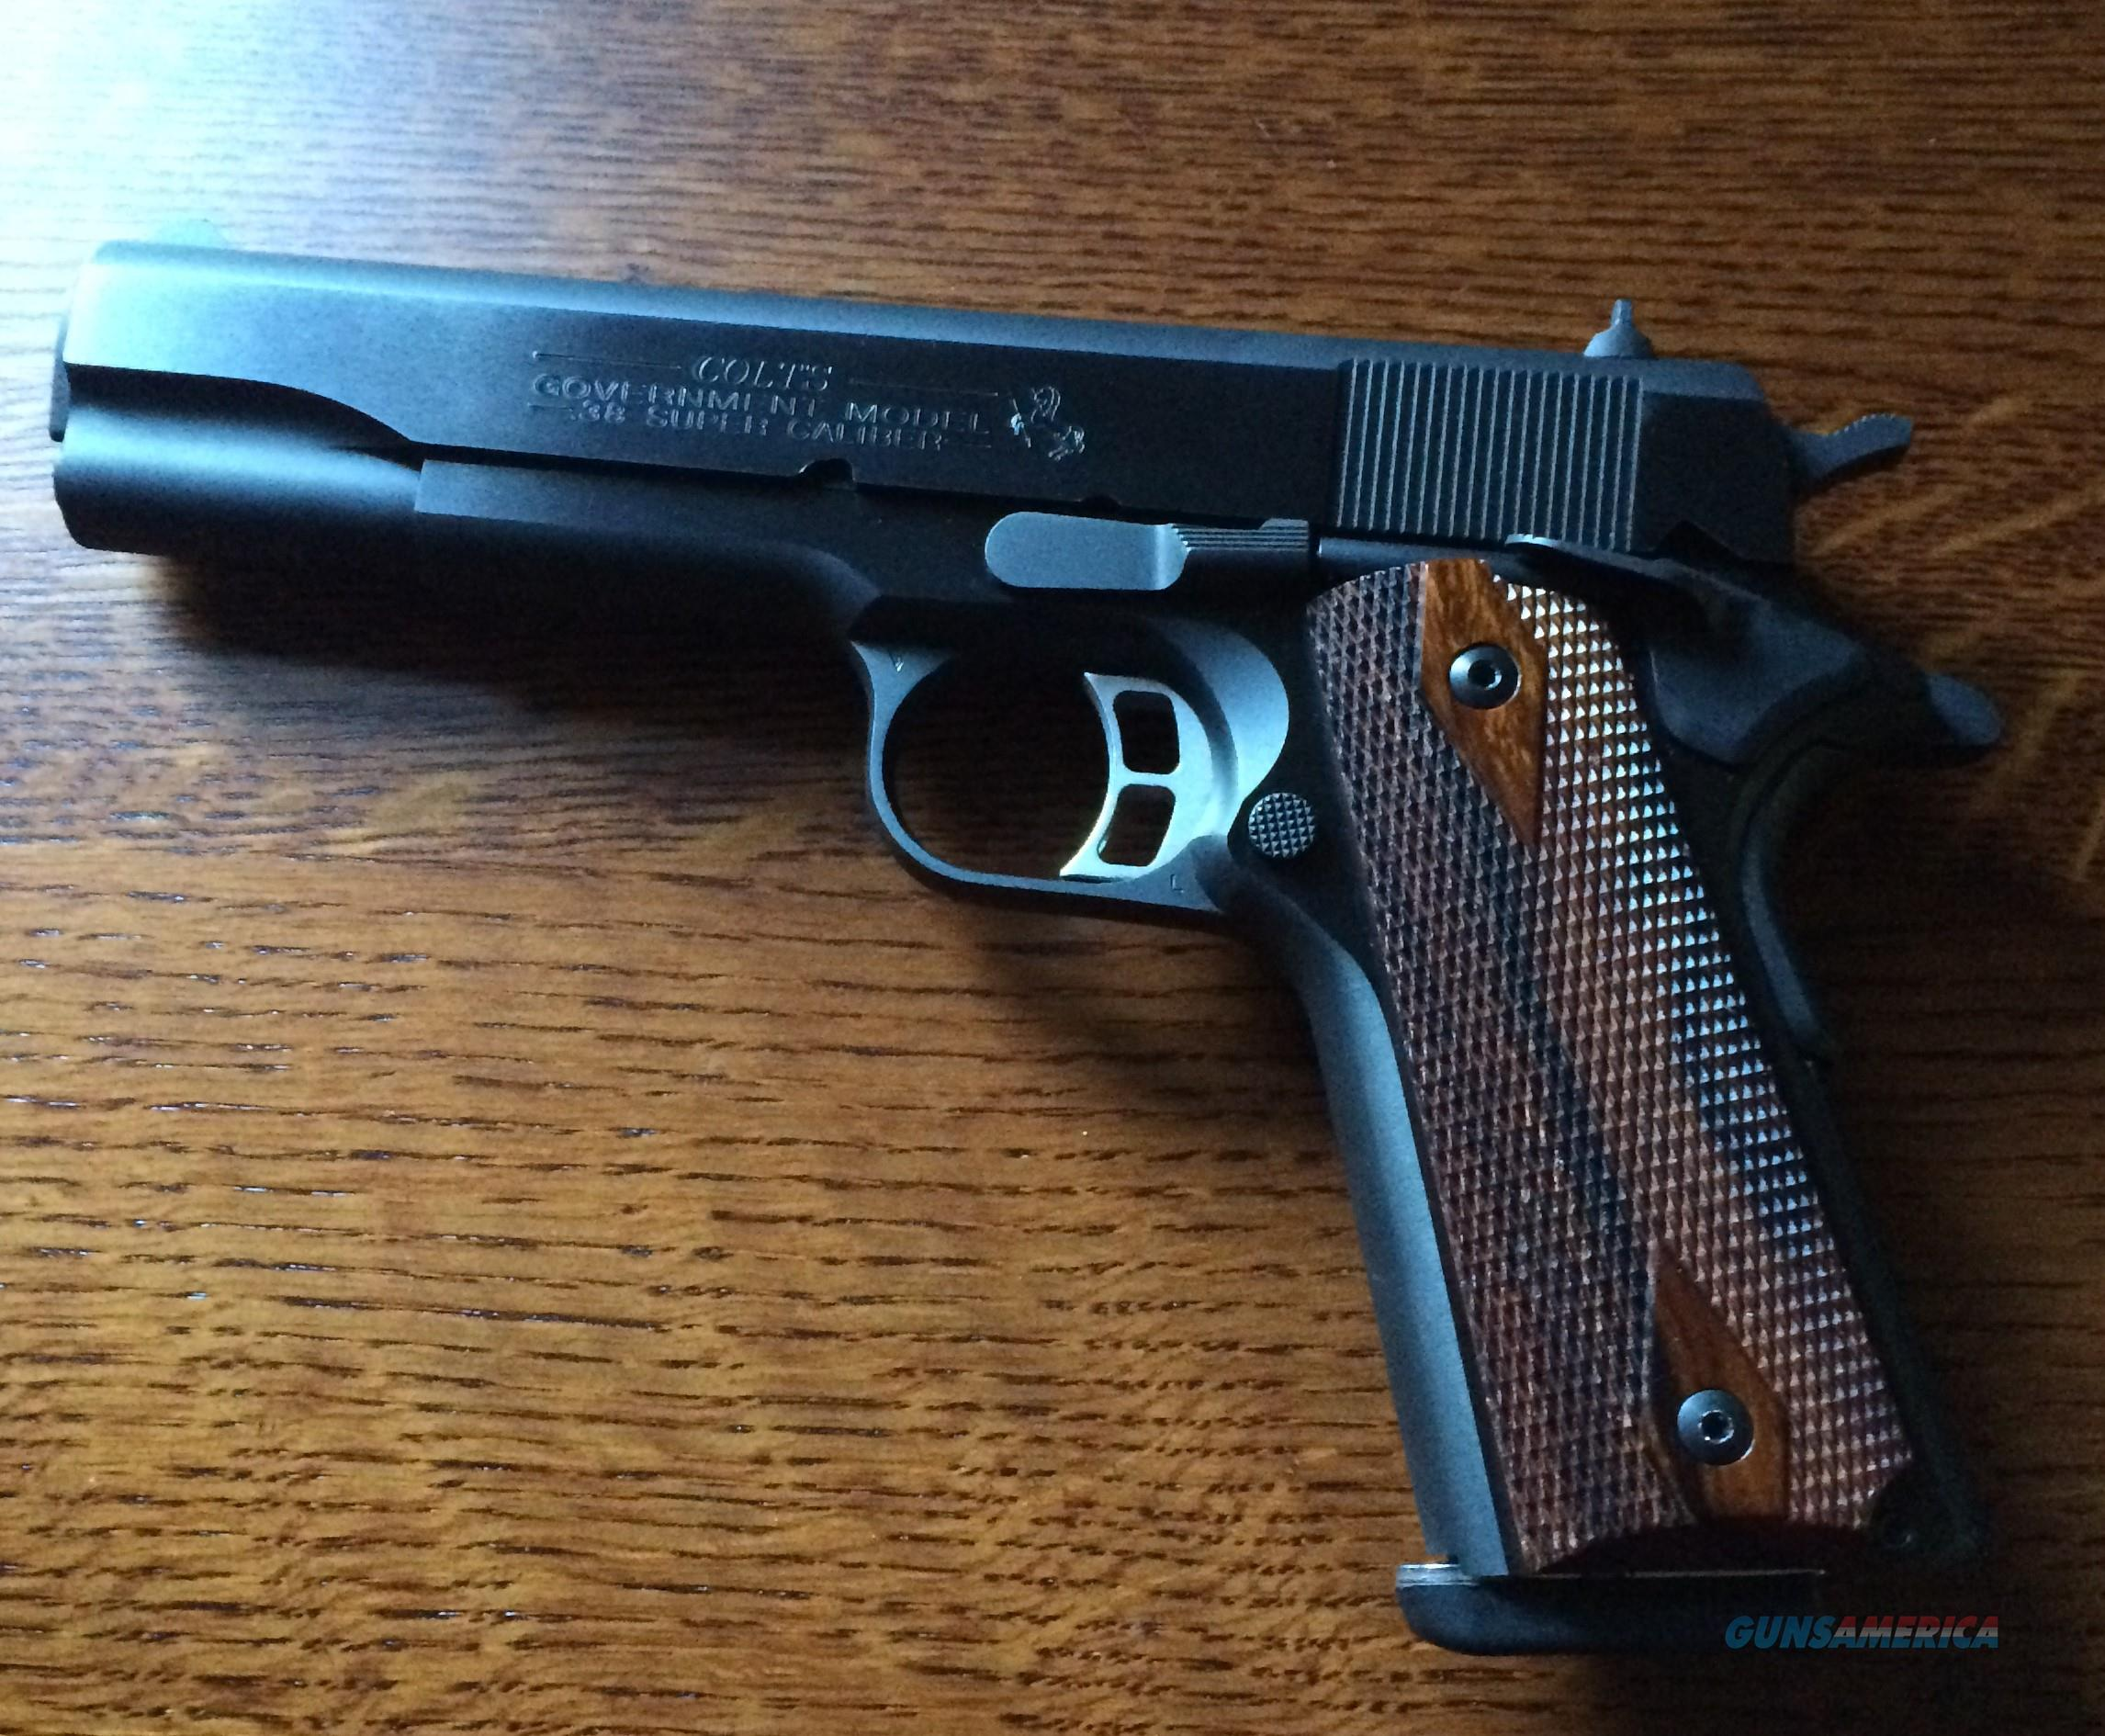 Colt Government series 80 model O blue 38 super  Guns > Pistols > Colt Automatic Pistols (1911 & Var)